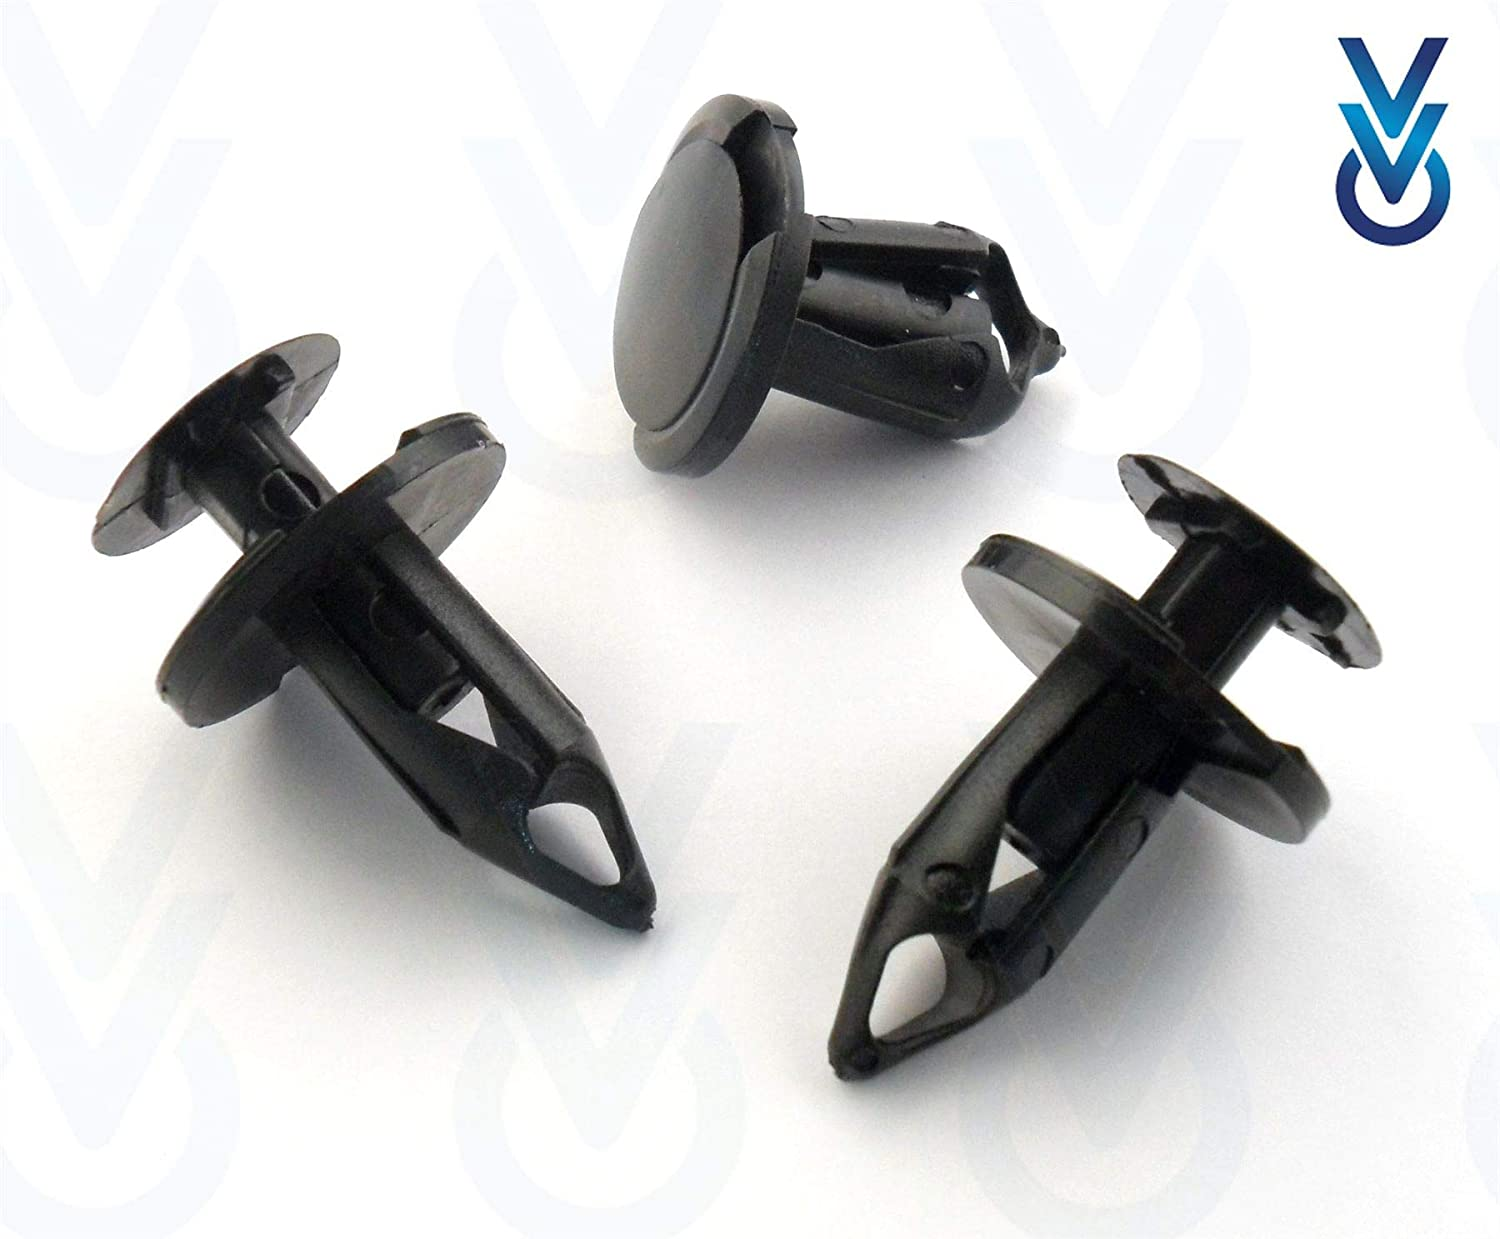 10x VVO® Vauxhall Front Bumper Clips /& Trim Fasteners 21030249